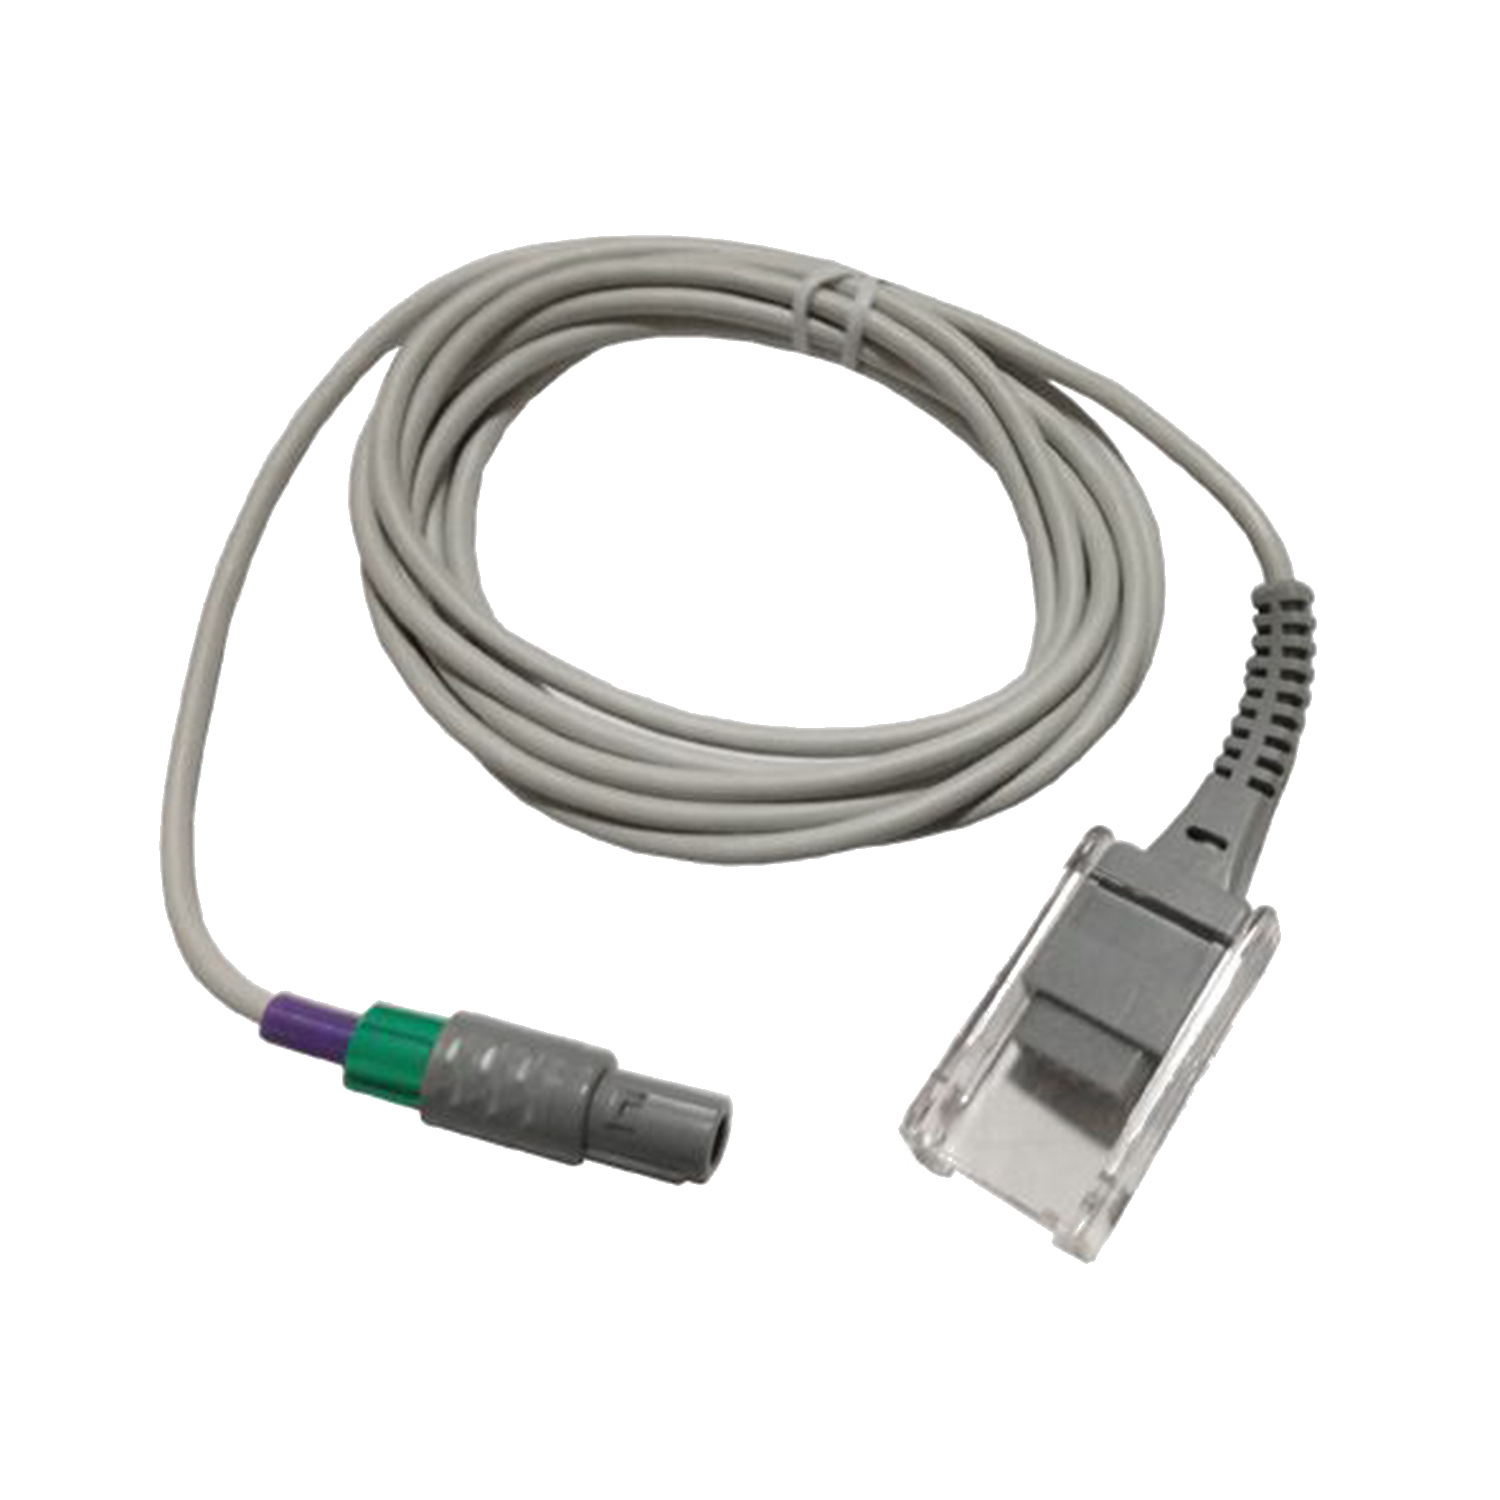 Analog Oximetry Extension Cable for Avante Waveline Series